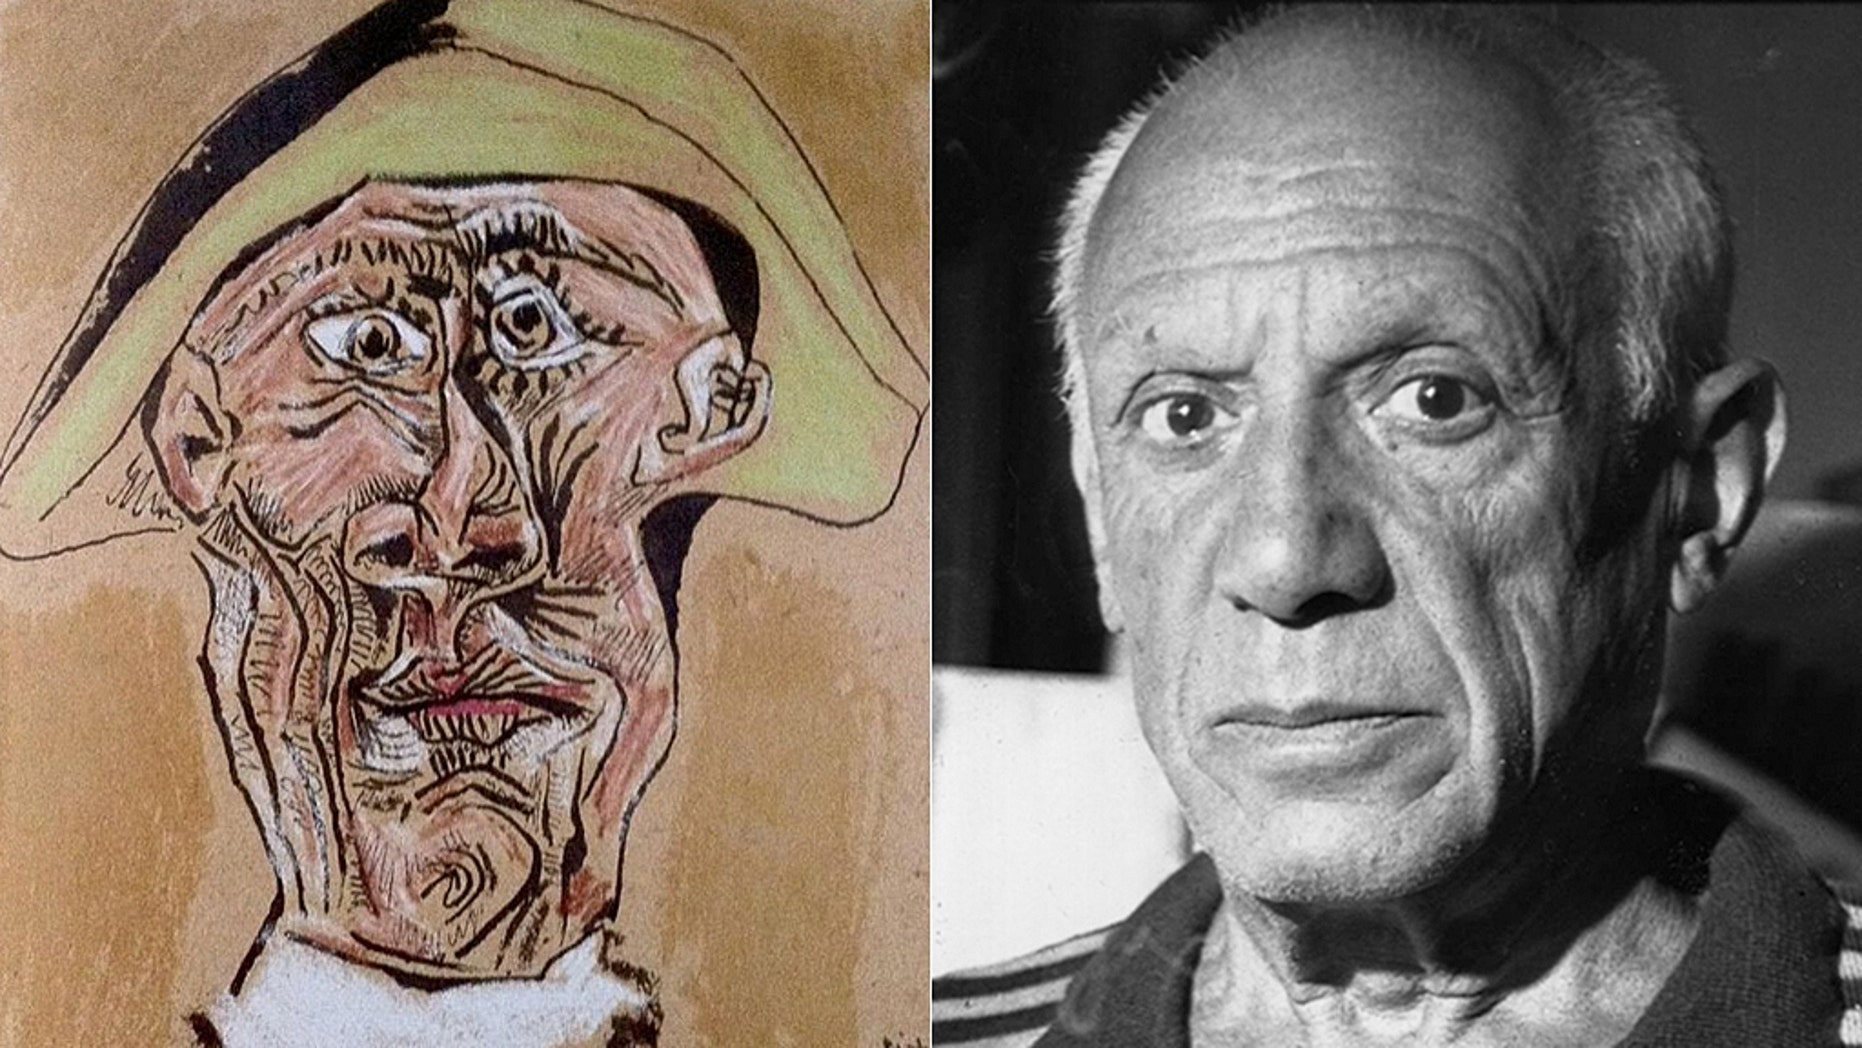 """Picasso's 1971 """"Tête d'Arlequin"""" (""""Harlequin's Head"""") which was stolen from Rotterdam's Kunsthal museum in 2012"""